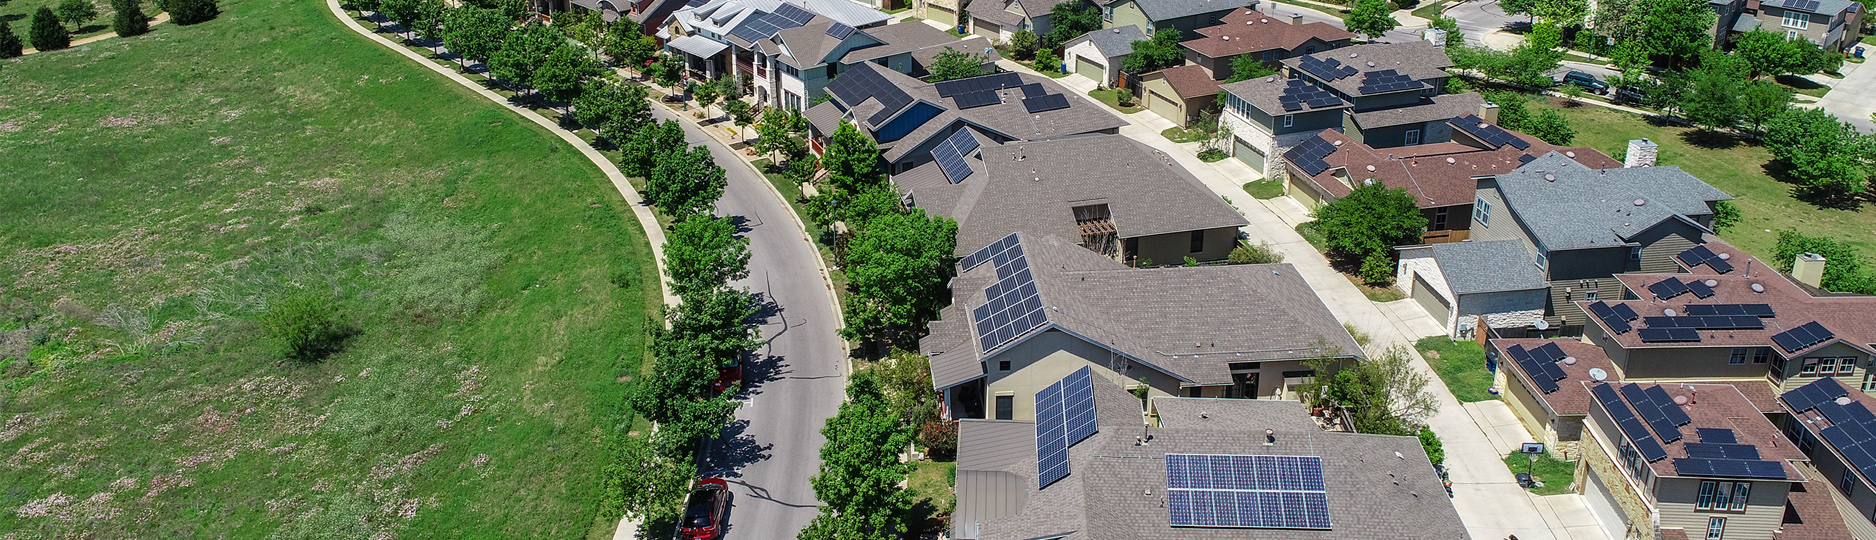 Austin Energy Home Wiring Green Building Central Ready To Install Solar On Your